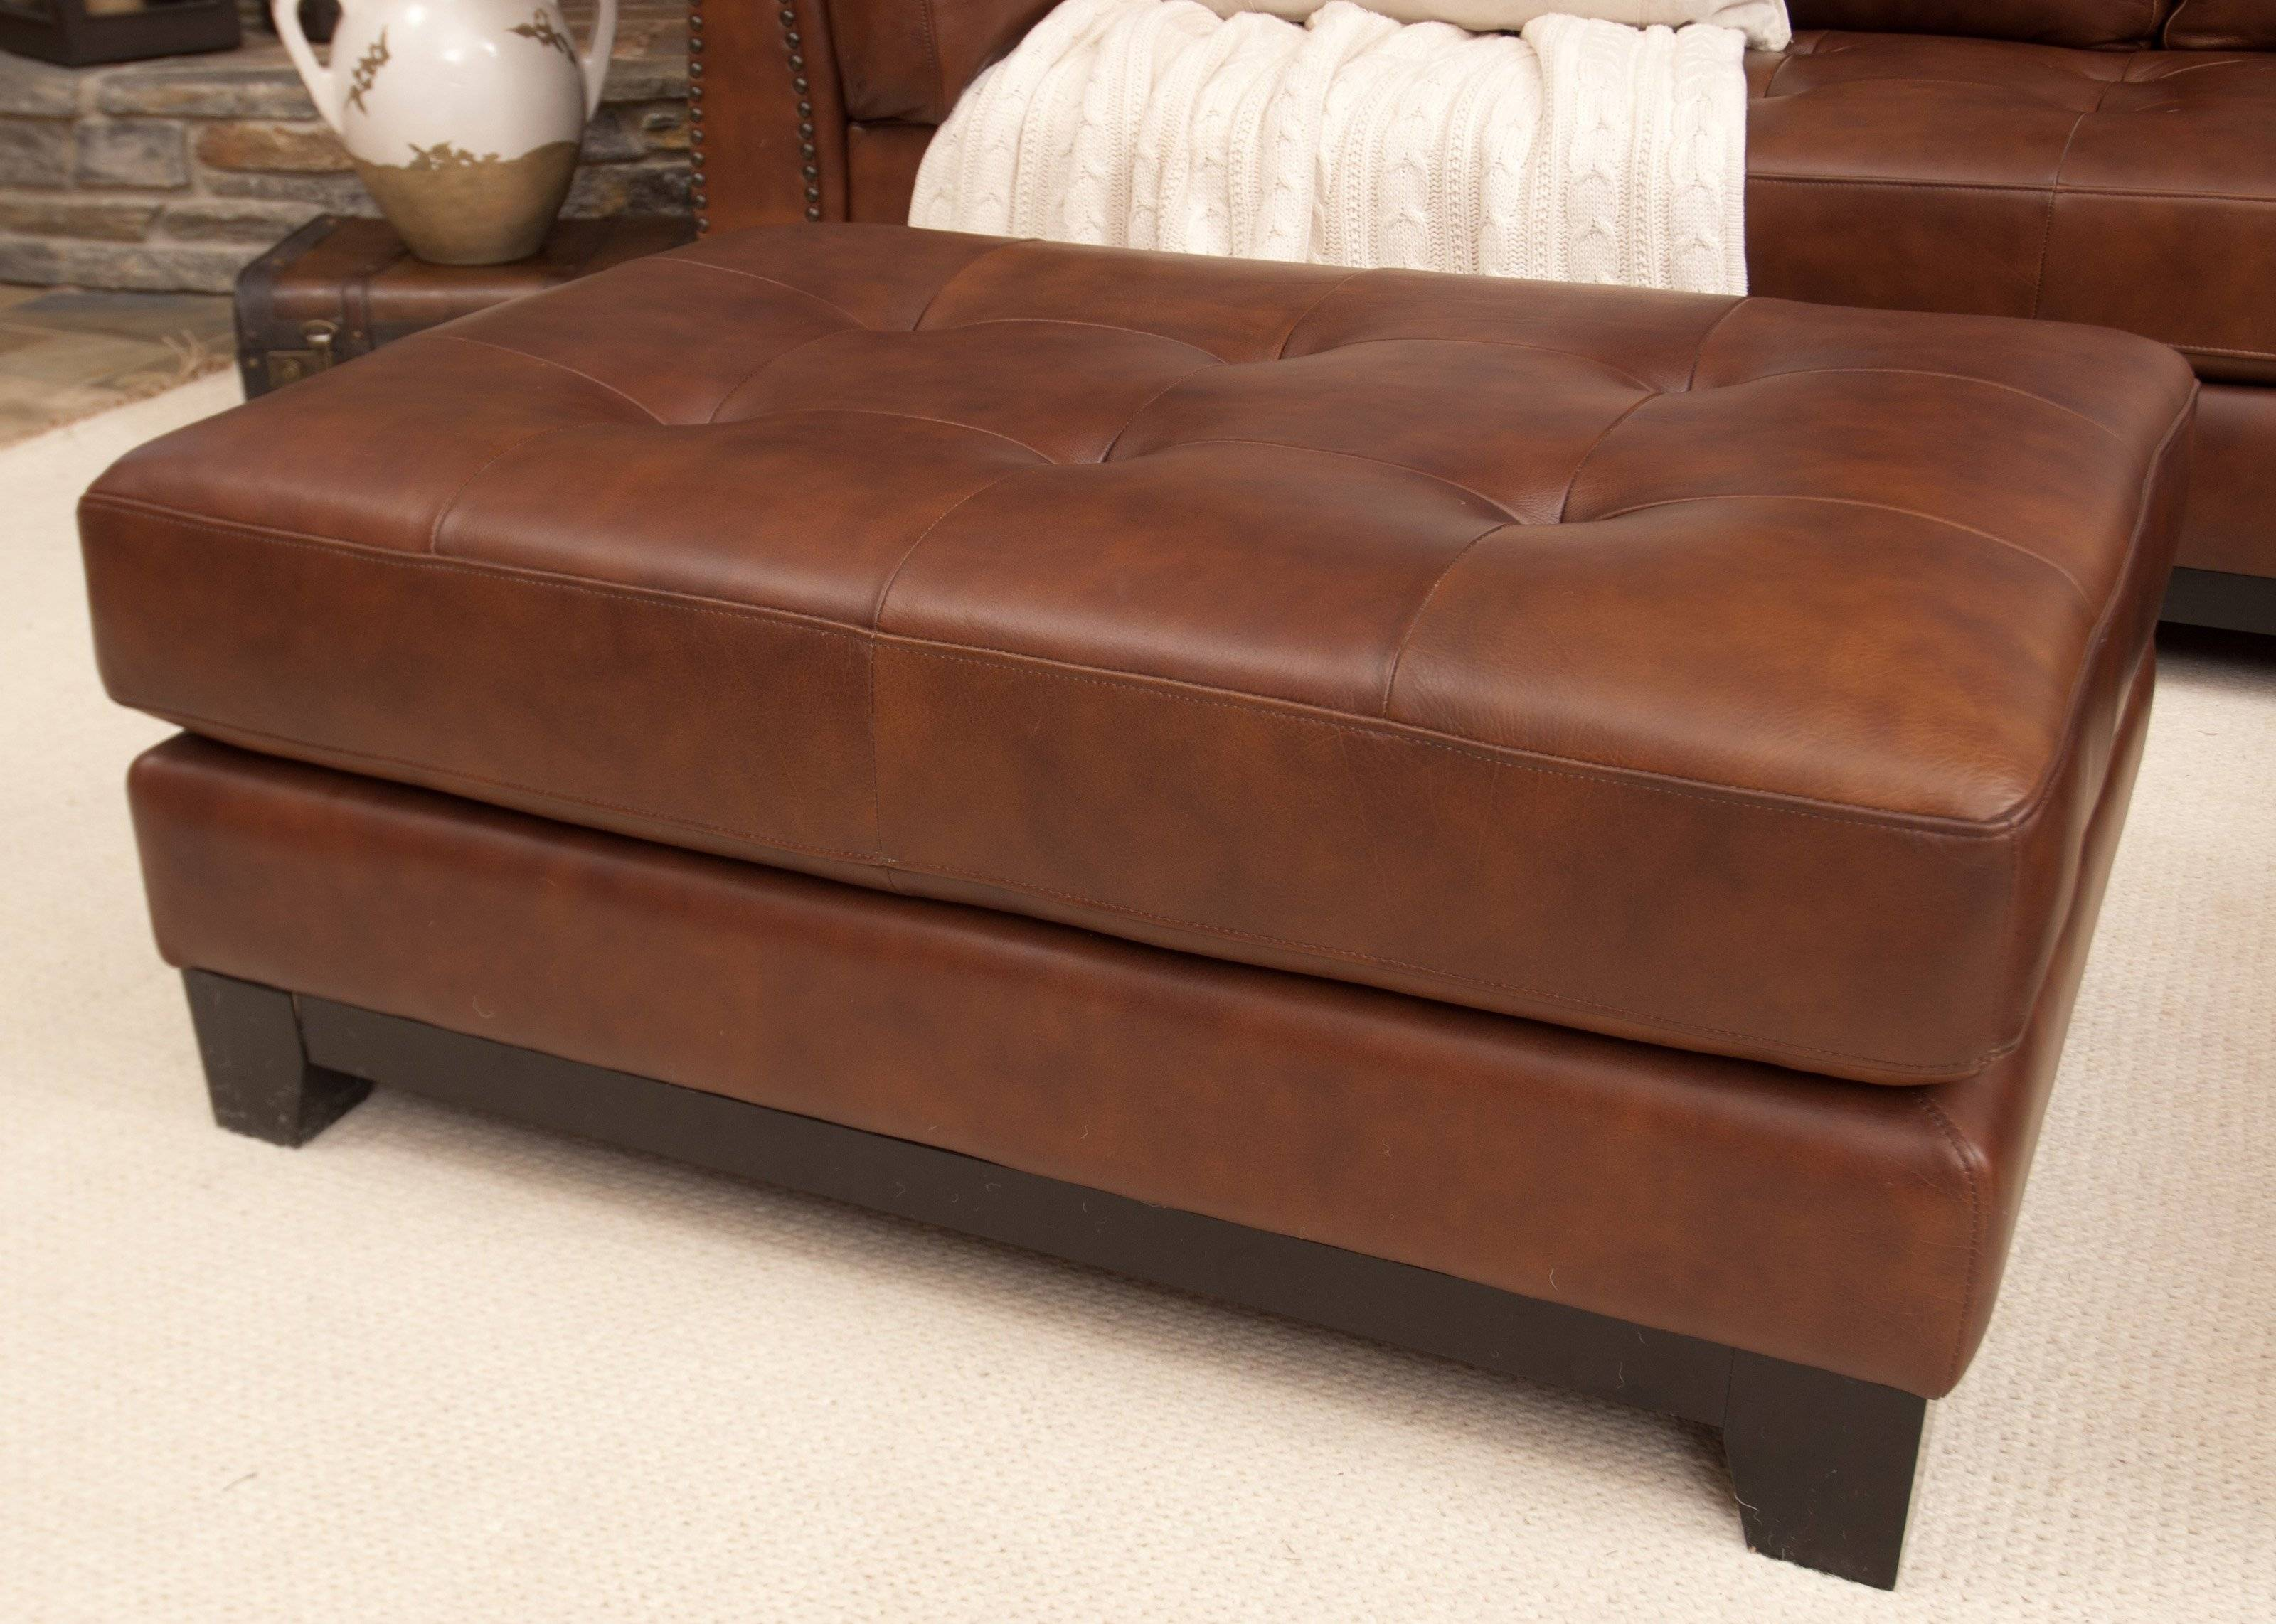 Tufted Ottoman Coffee Table Supple Leather